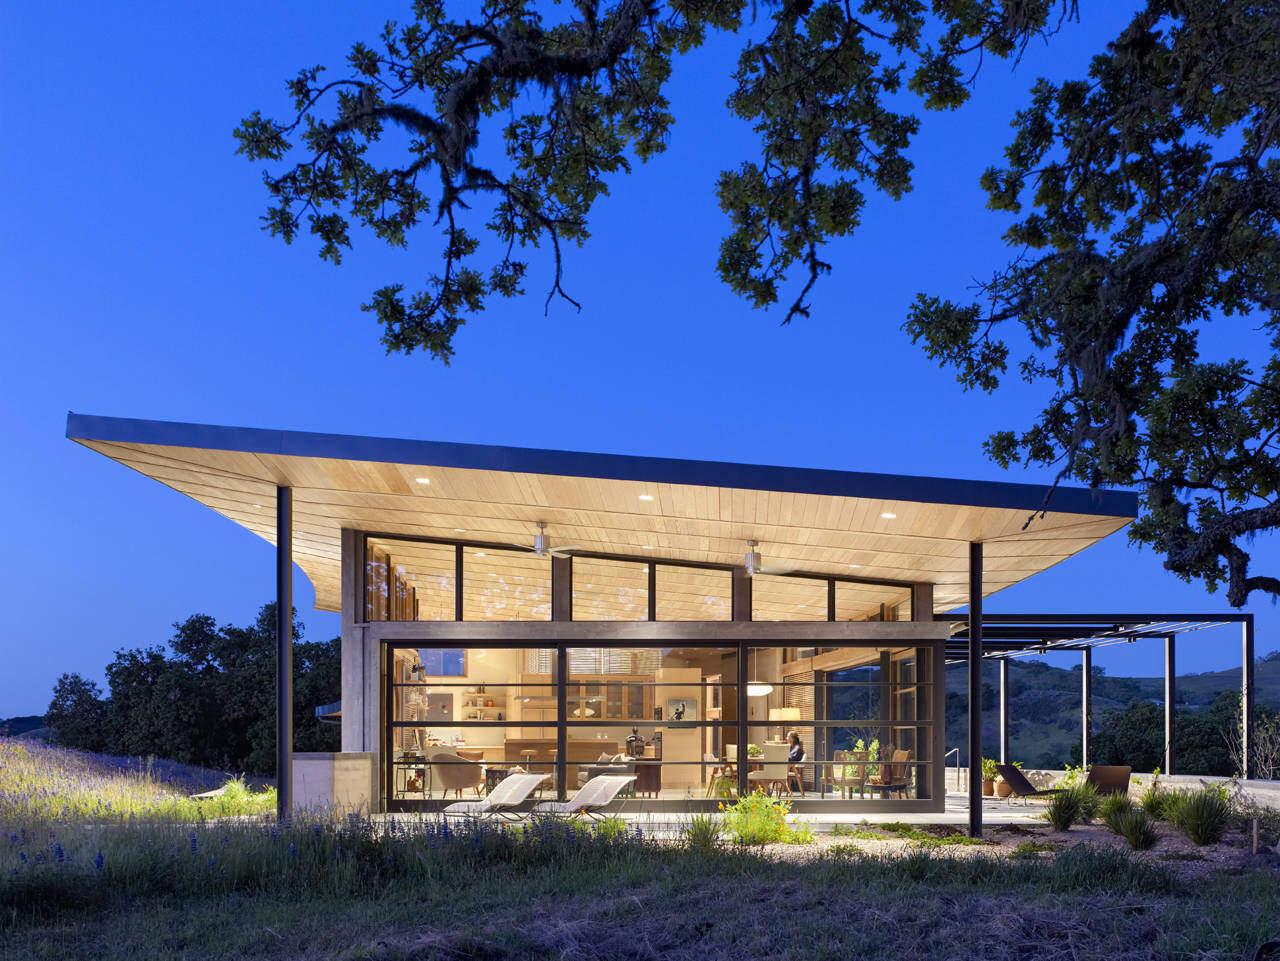 Caterpillar House: Modern Ranch Connected to the Beauty of Nature